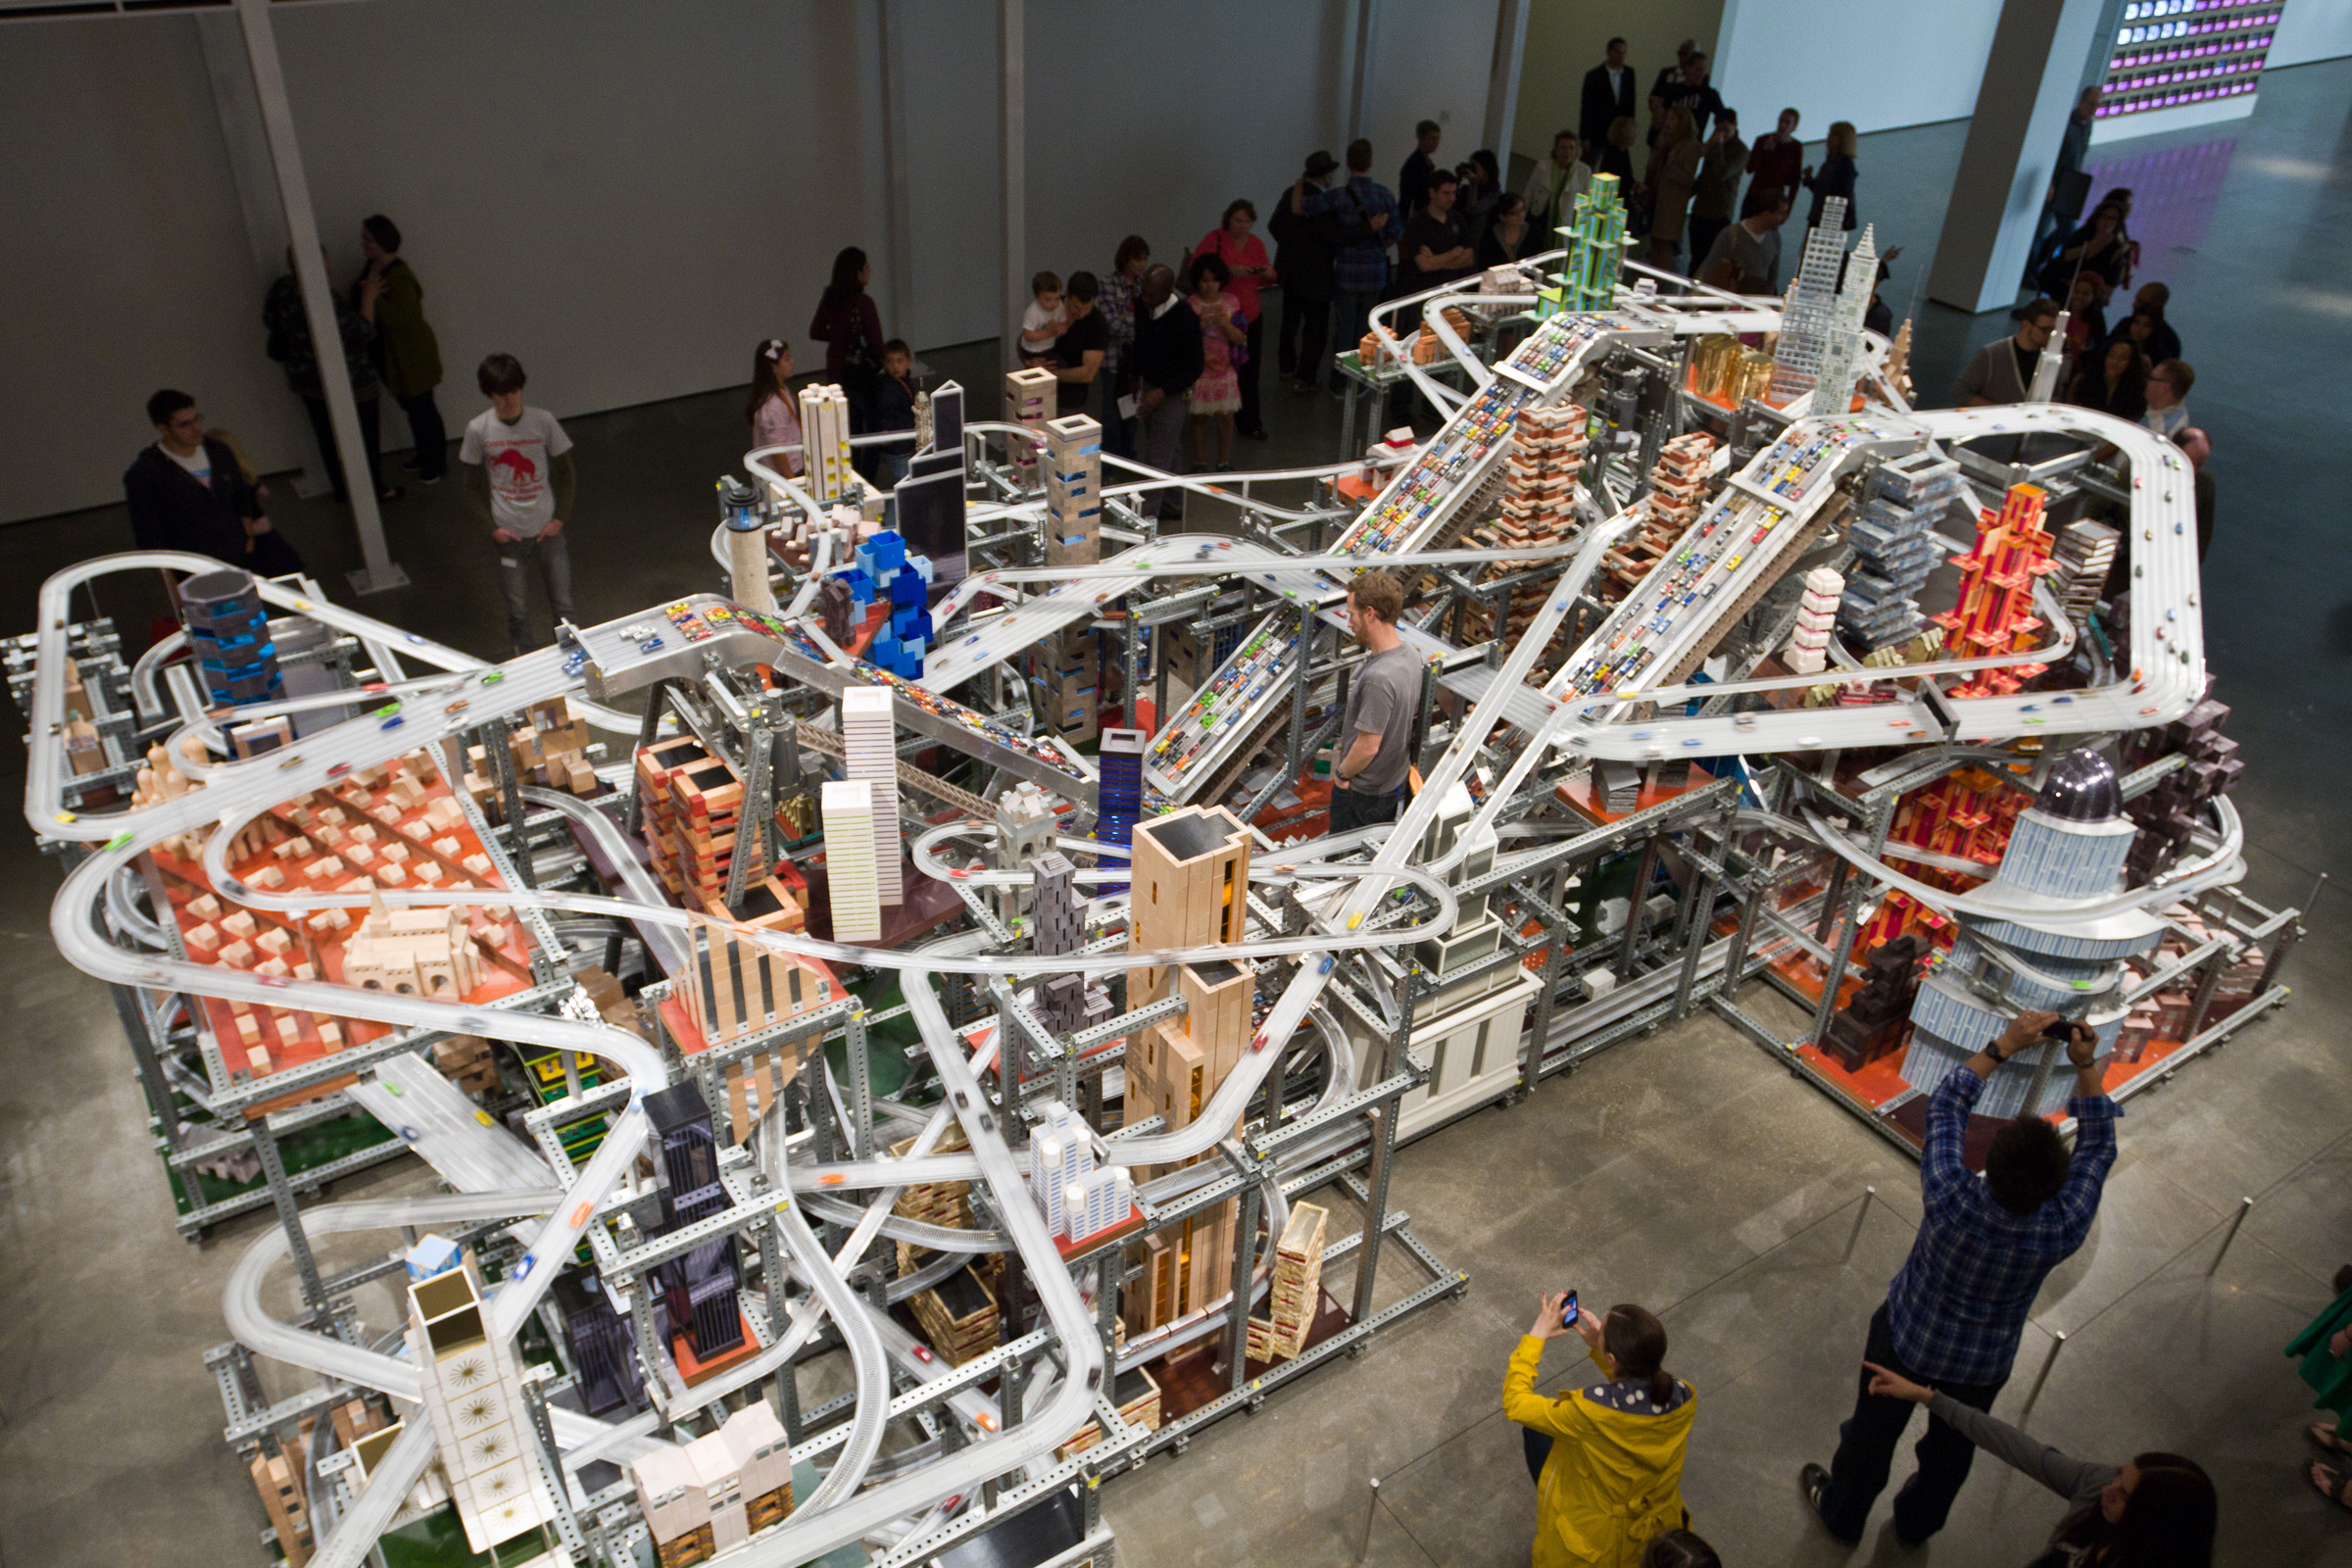 Chris Burden, Metropolis II (detail), 2010, courtesy of the Nicolas Berggruen Charitable Foundation, © Chris Burden/licensed by The Chris Burden Estate and Artists Rights Society (ARS), New York, photo © Museum Associates/LACMA Conservation, by Yosi Pozeilov